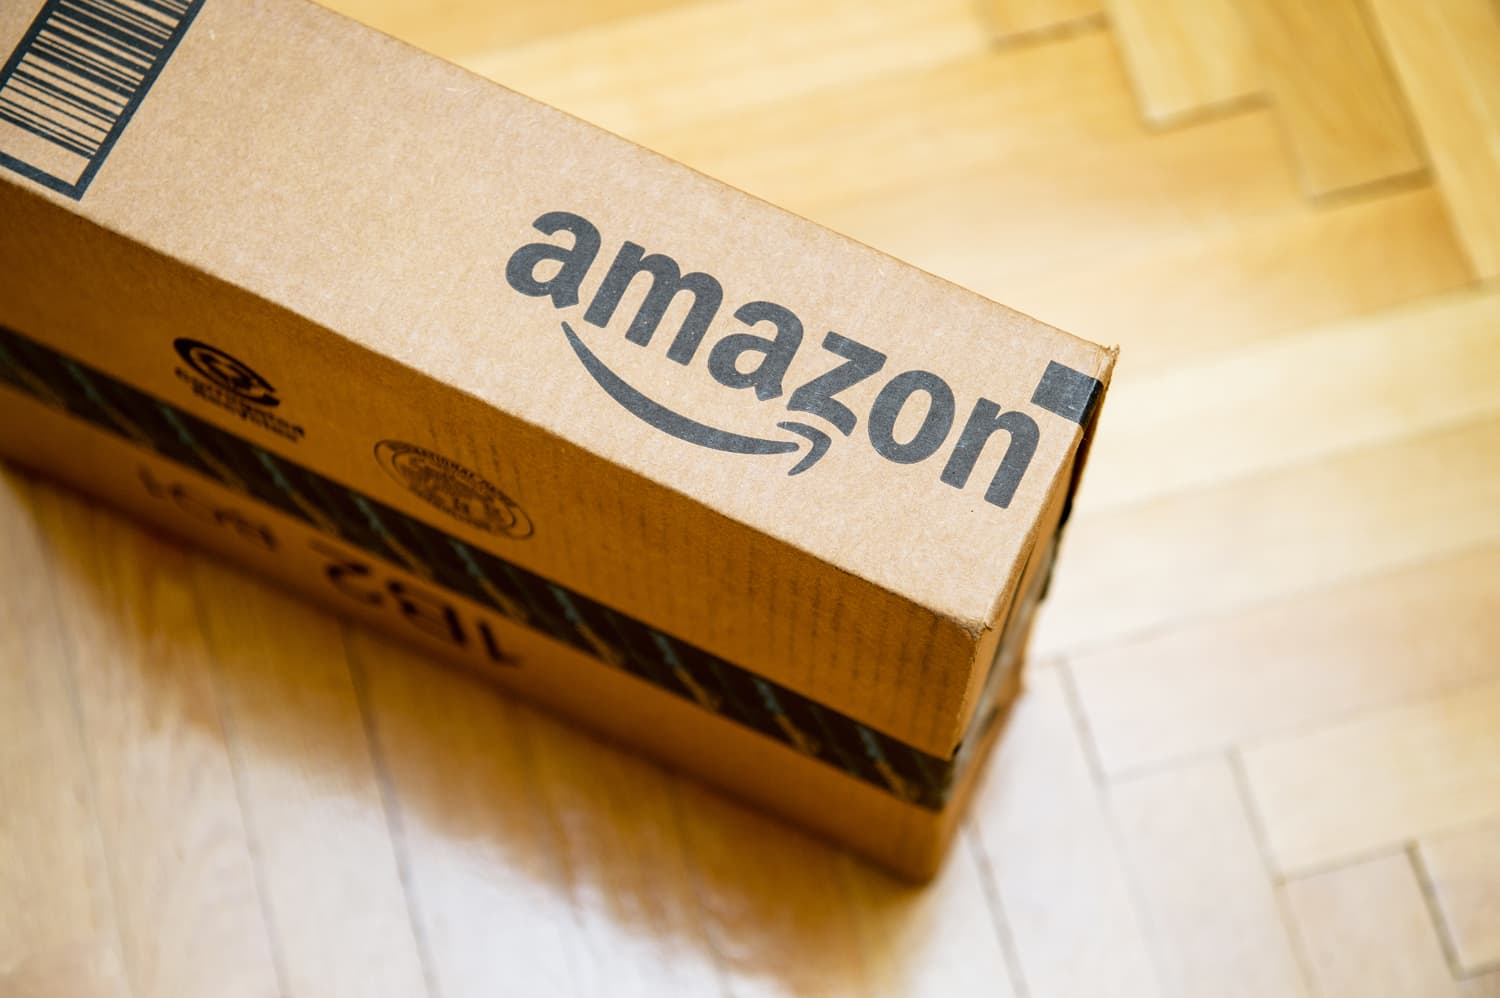 10 Seemingly-Ordinary Amazon Items That Are Surprising Cult Favorites